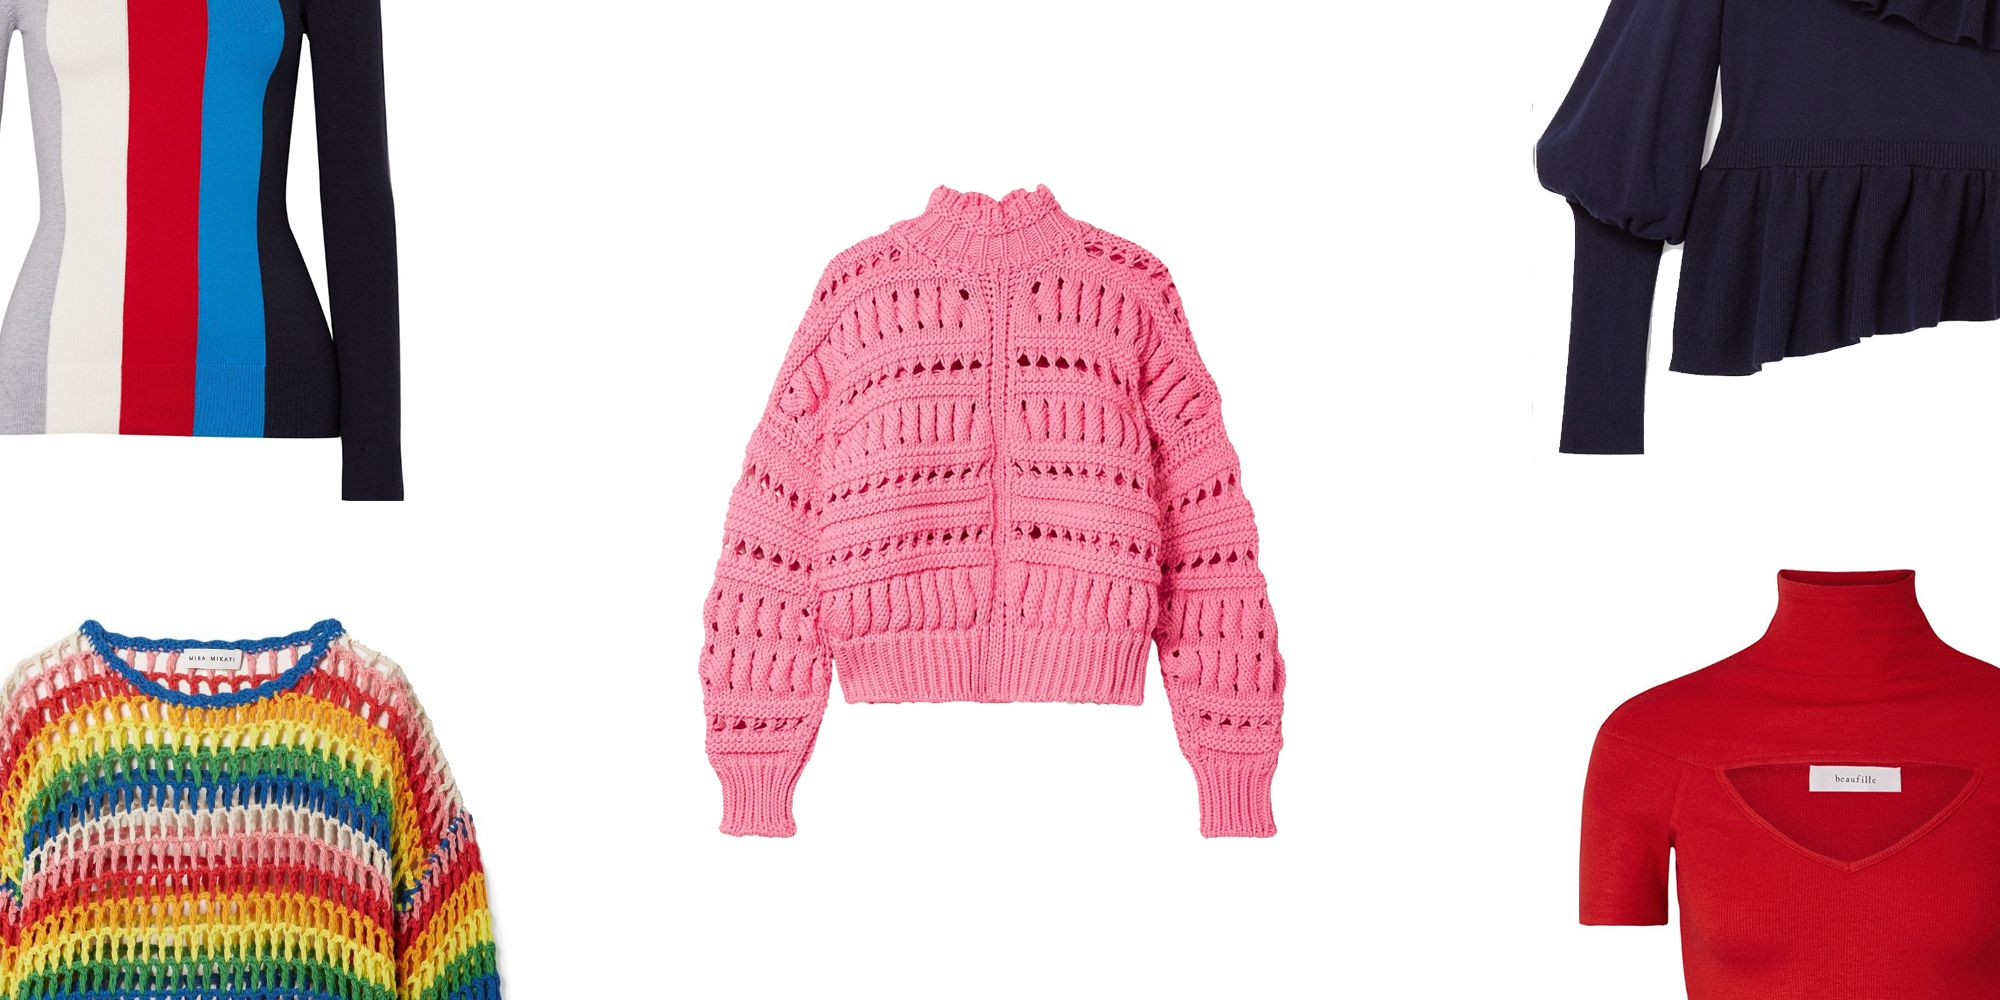 15 Best Sweaters For Fall 2018 - Warm Sweaters for Fall and Winter 7c00292ec